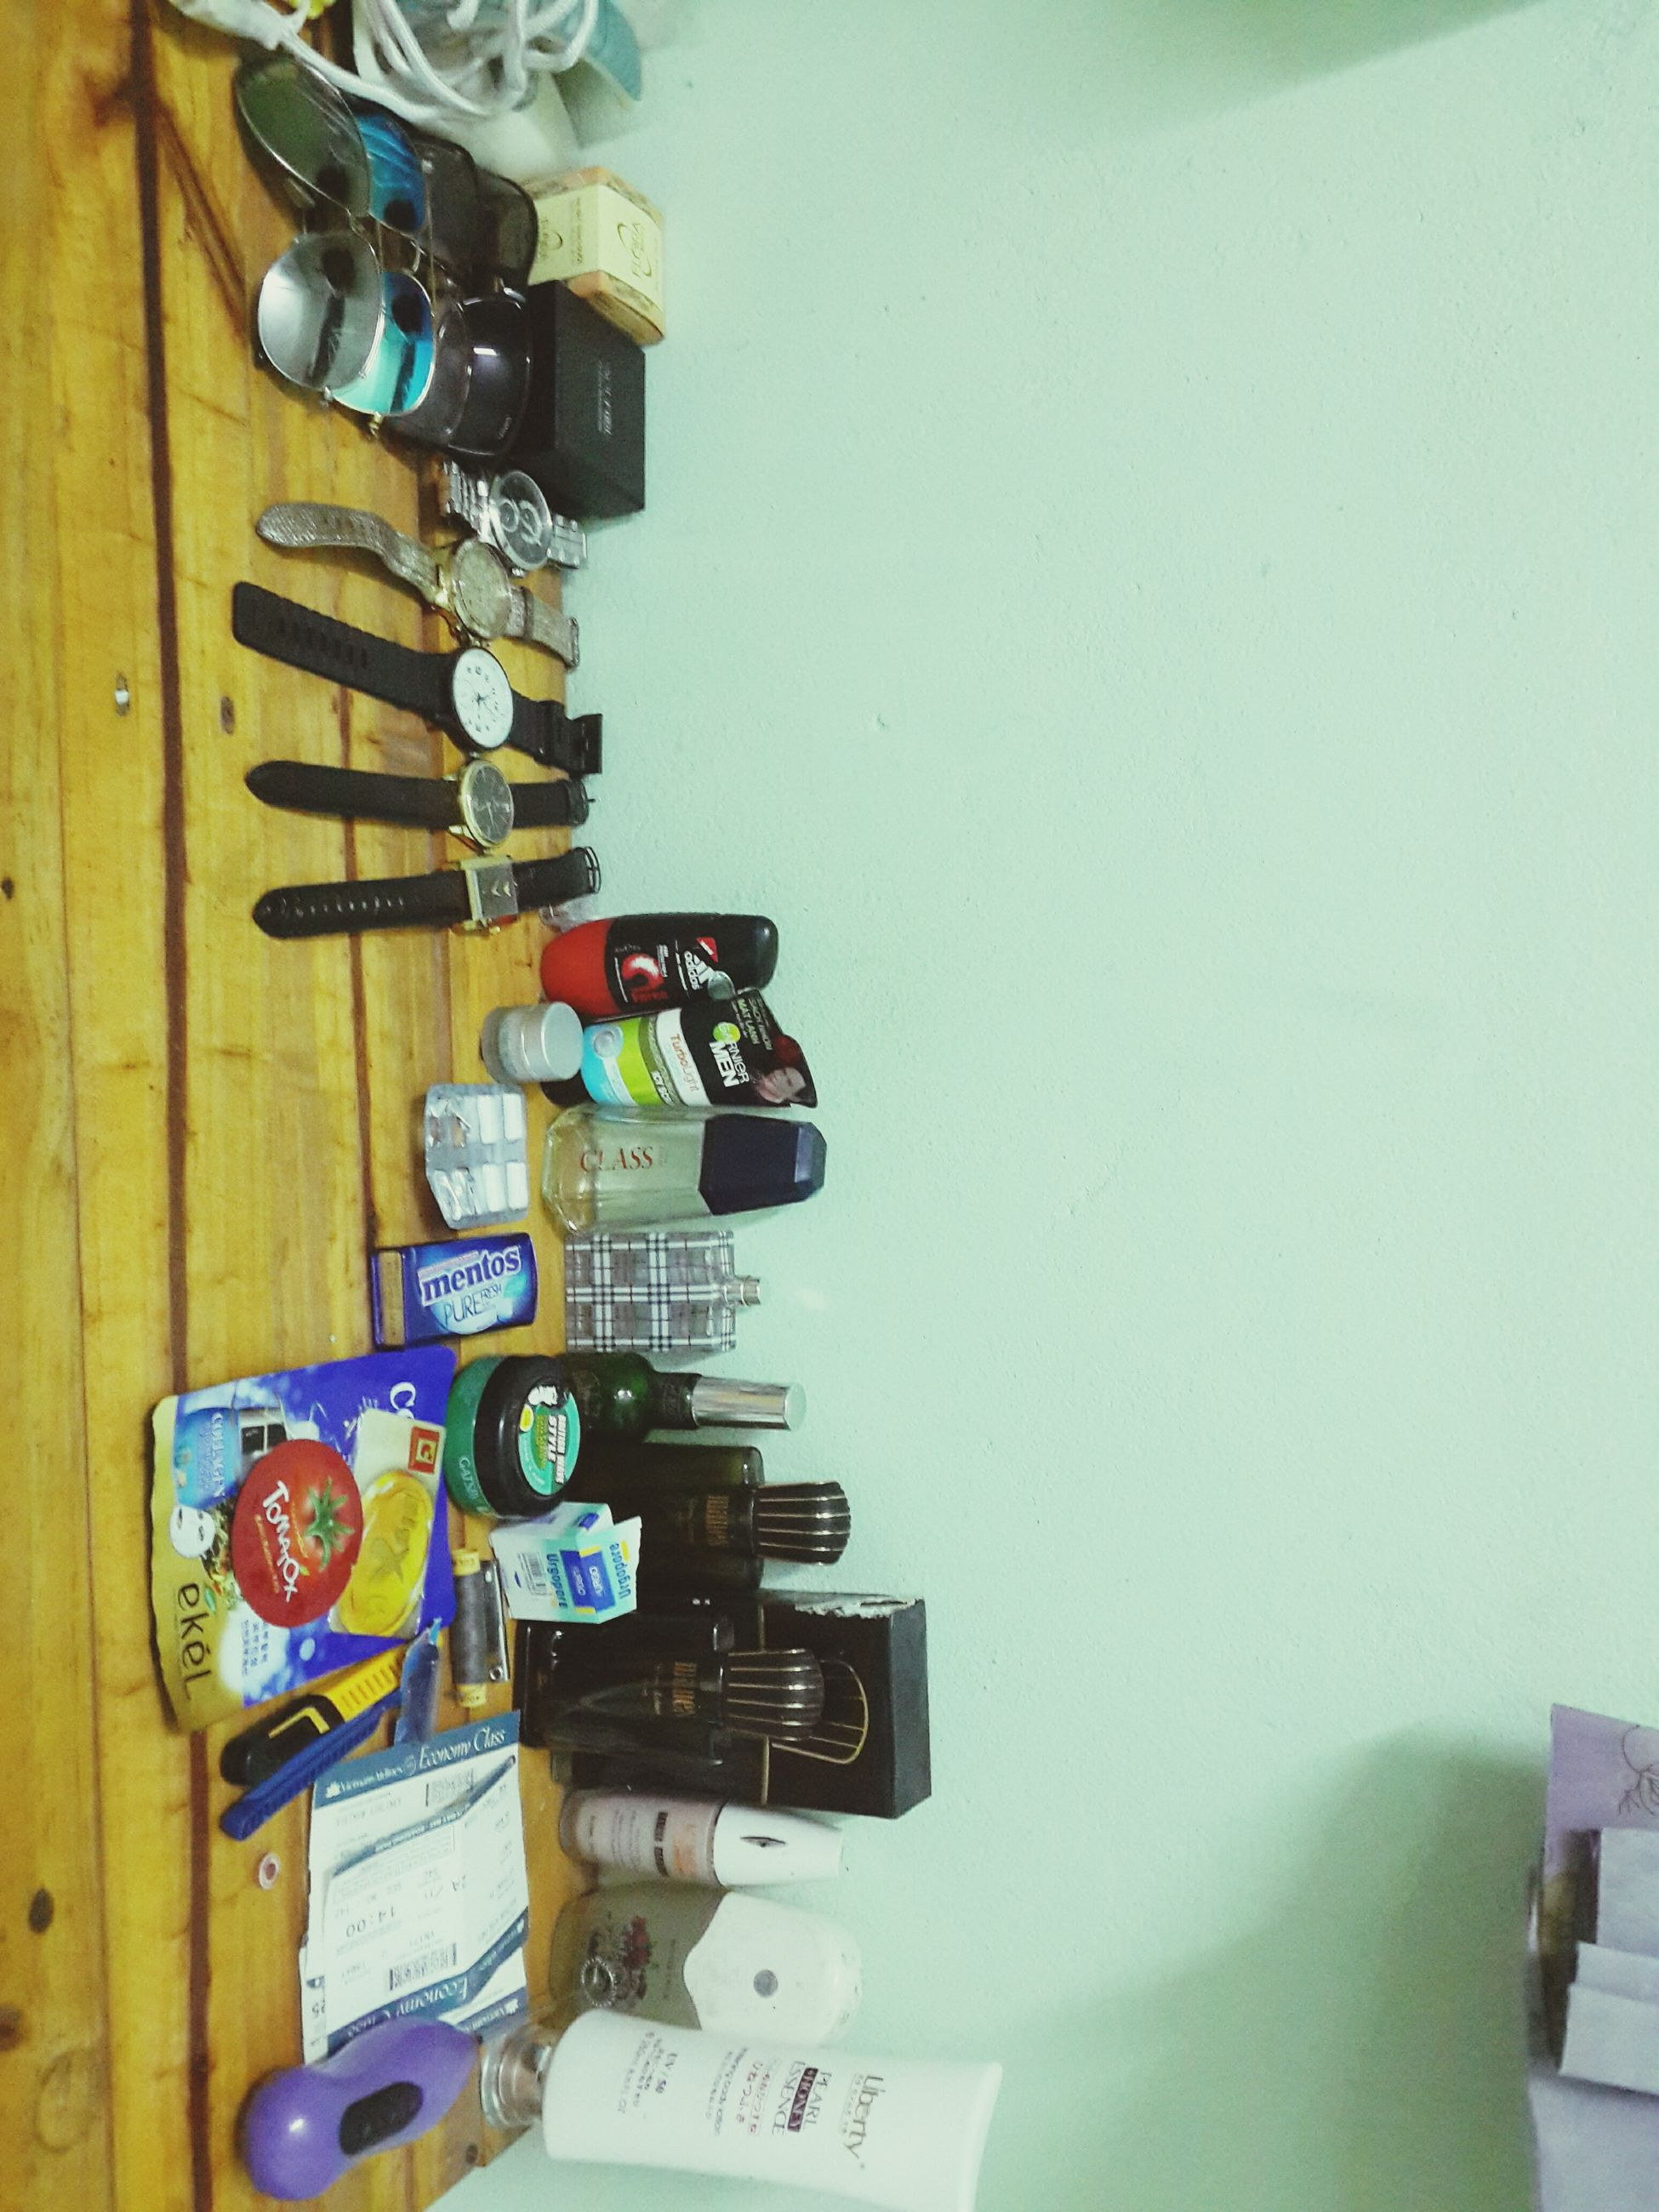 indoors, communication, text, variation, technology, large group of objects, western script, still life, choice, no people, hanging, wall - building feature, equipment, number, control, close-up, wood - material, in a row, blue, non-western script